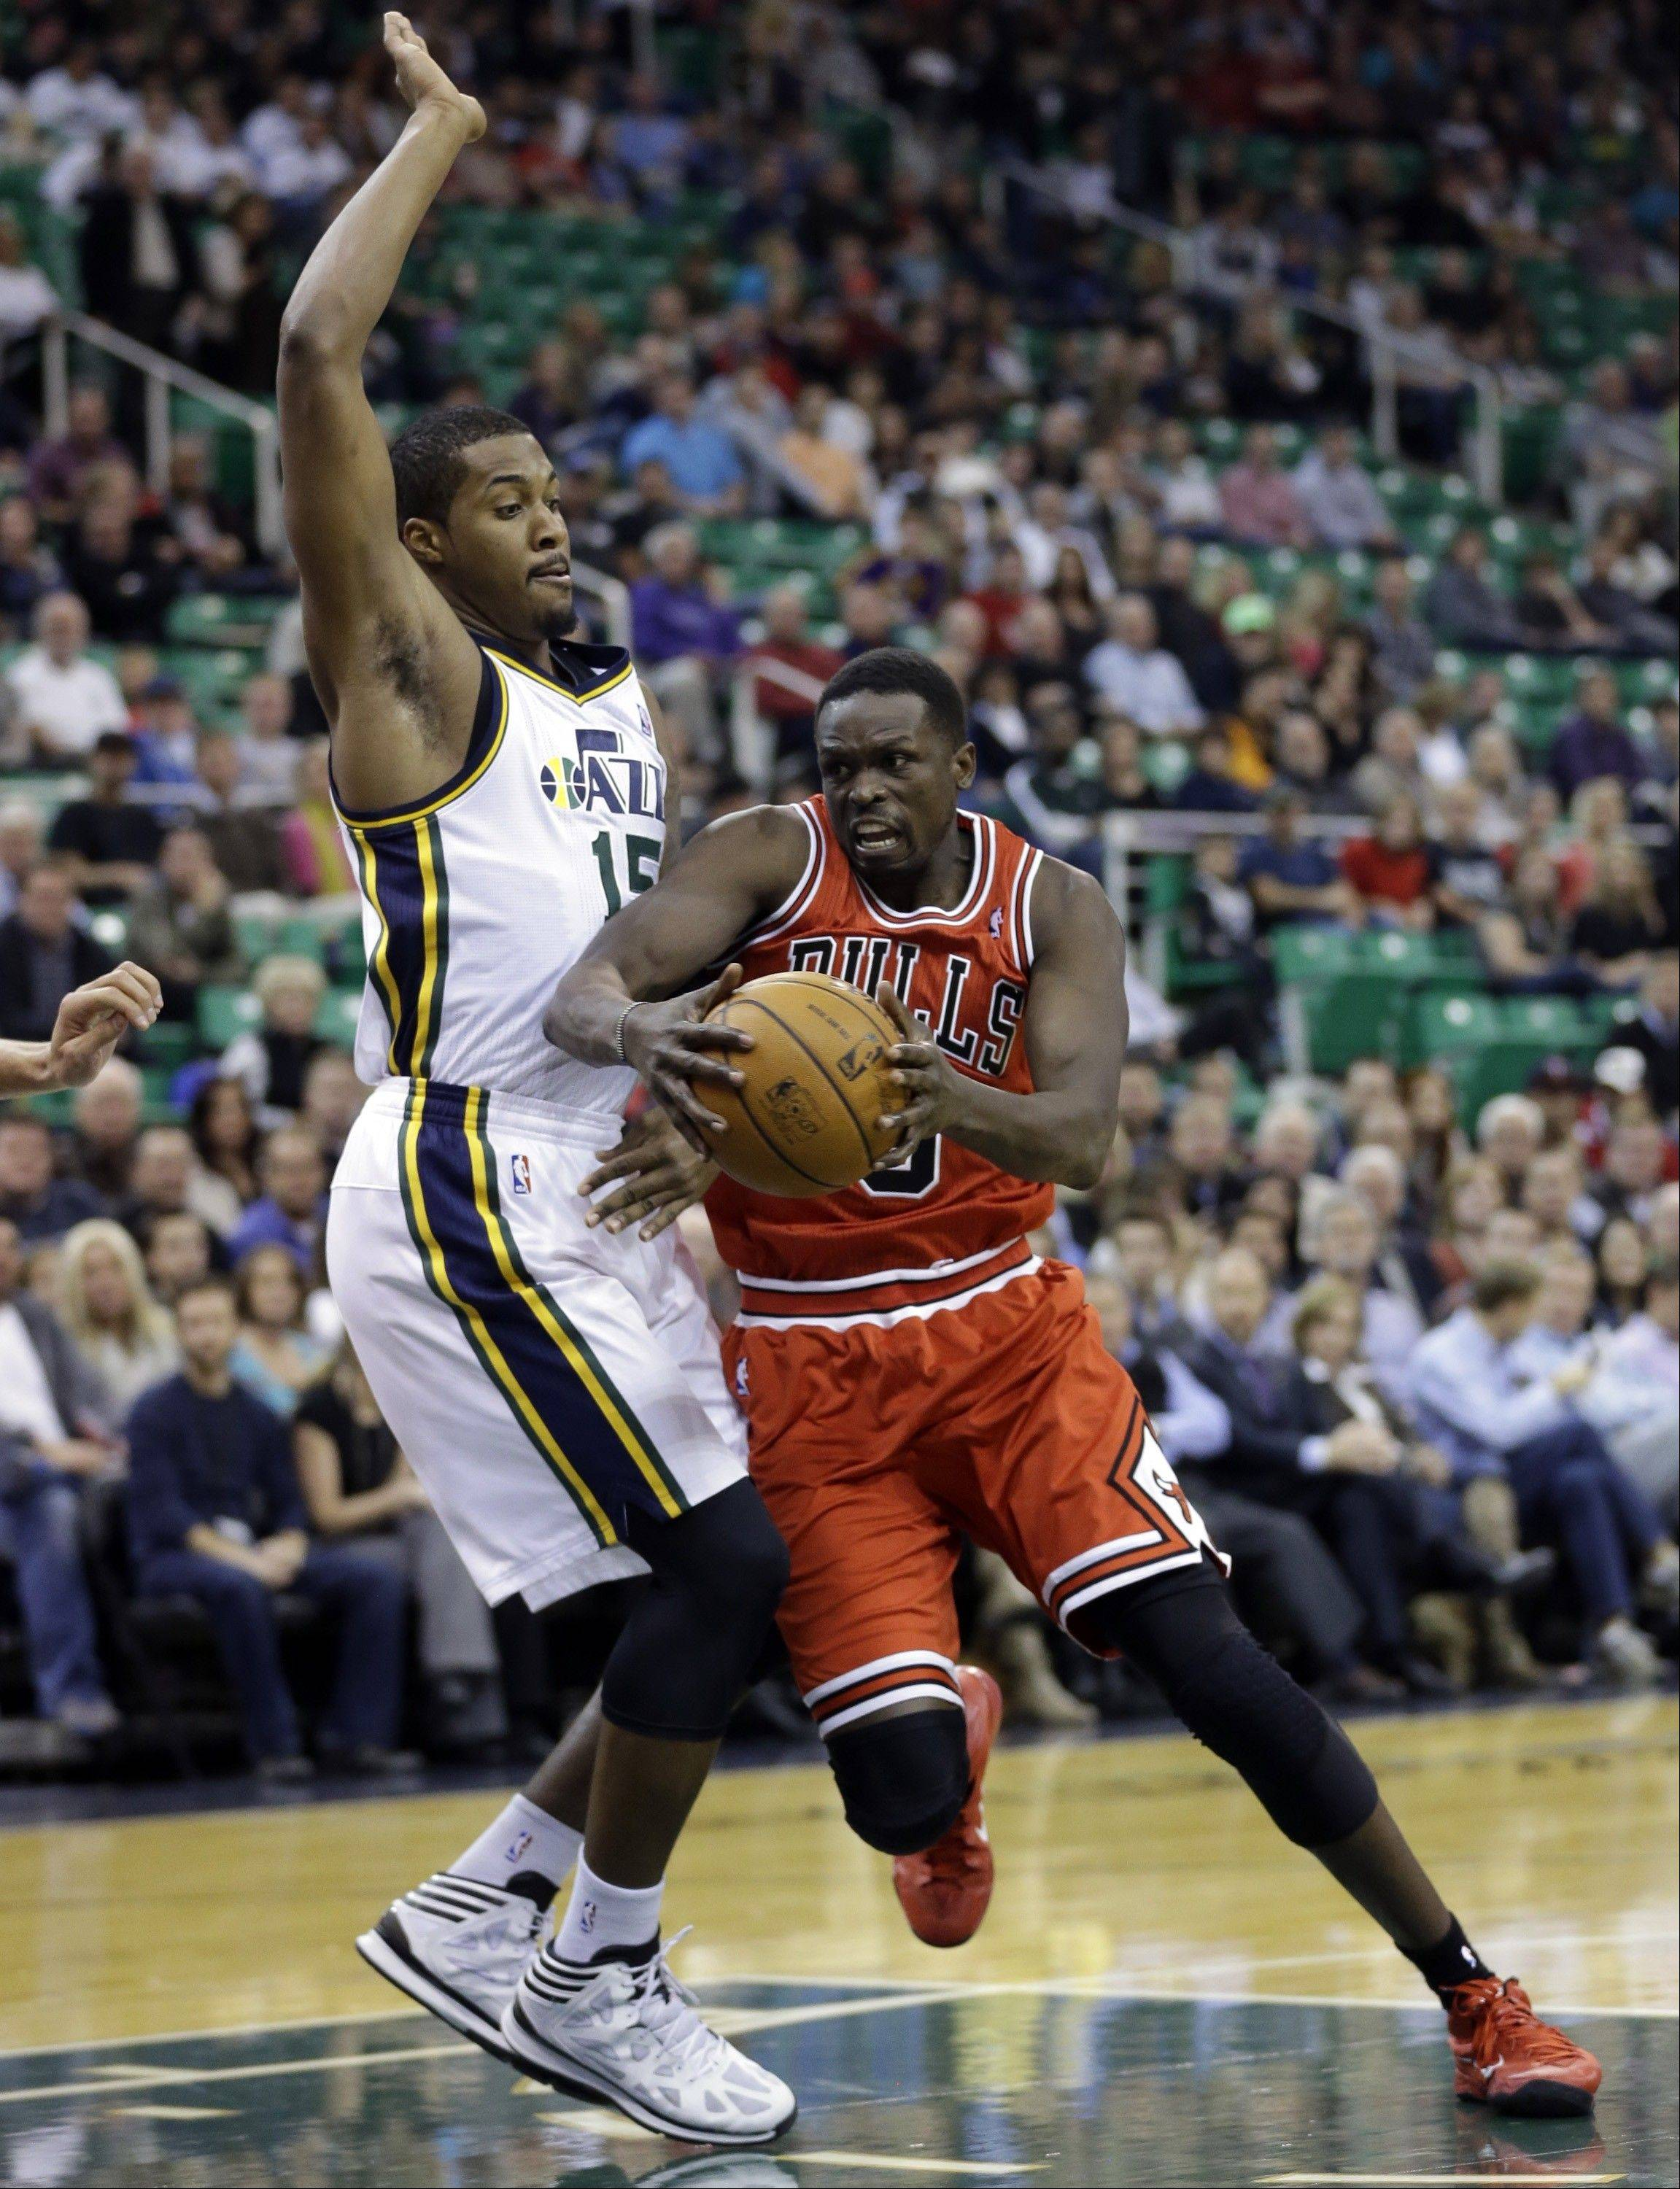 The Bulls' Luol Deng drives to the basket as Utah's Derrick Favors defends in the first quarter Monday night.